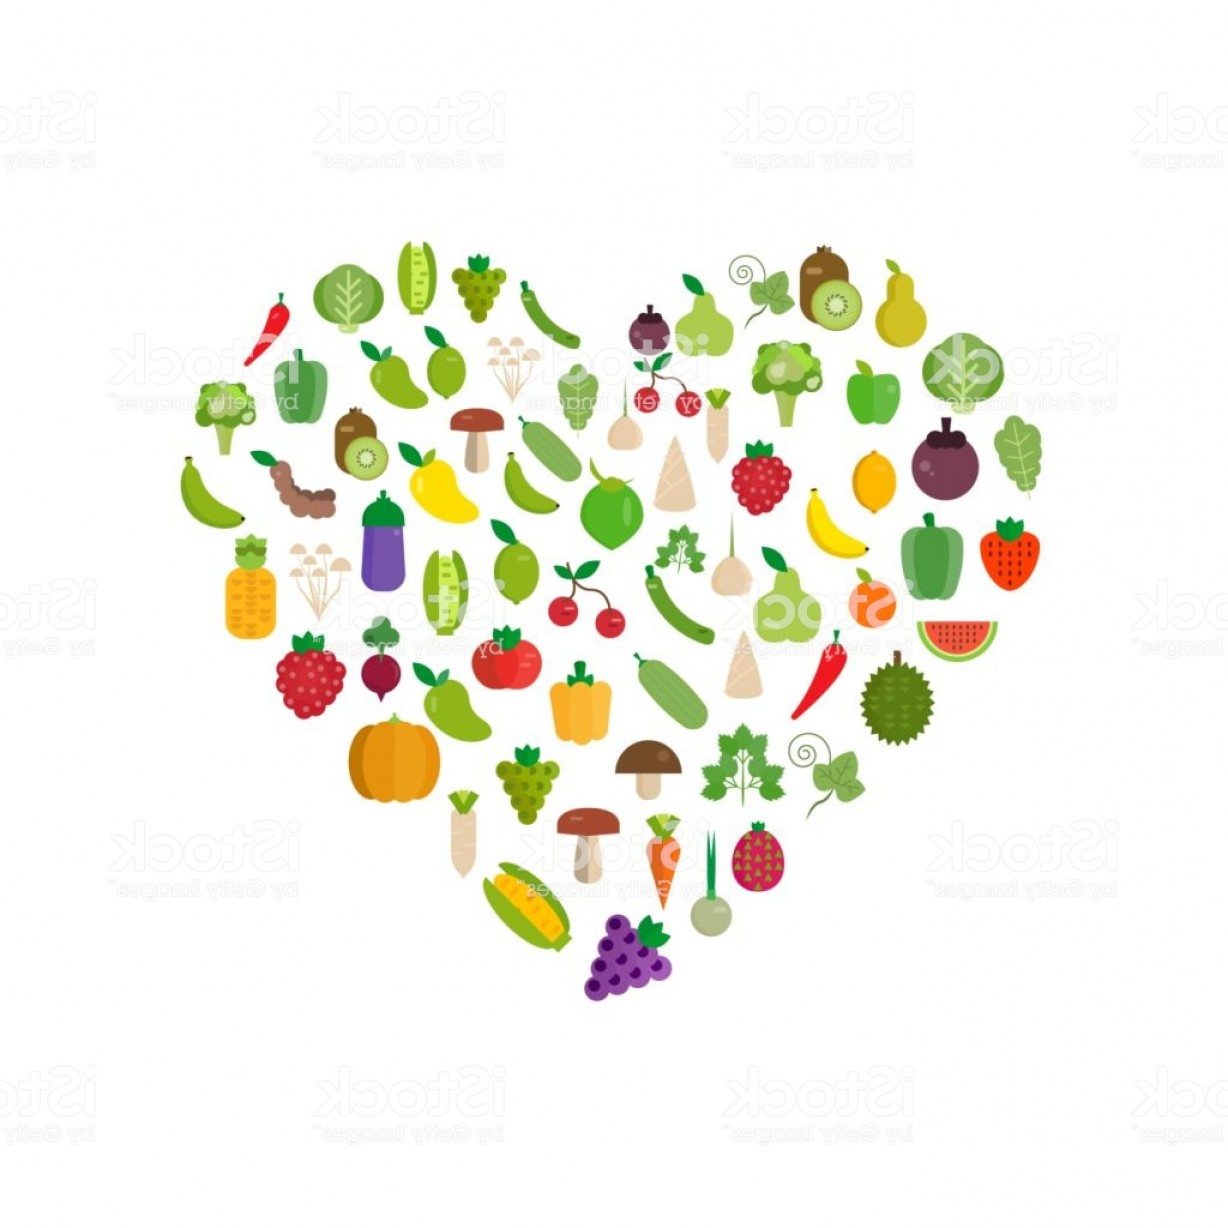 Vector Fruit Vegetable: Fruits Vegetables Organic Flat Vector Illustration Set Gm